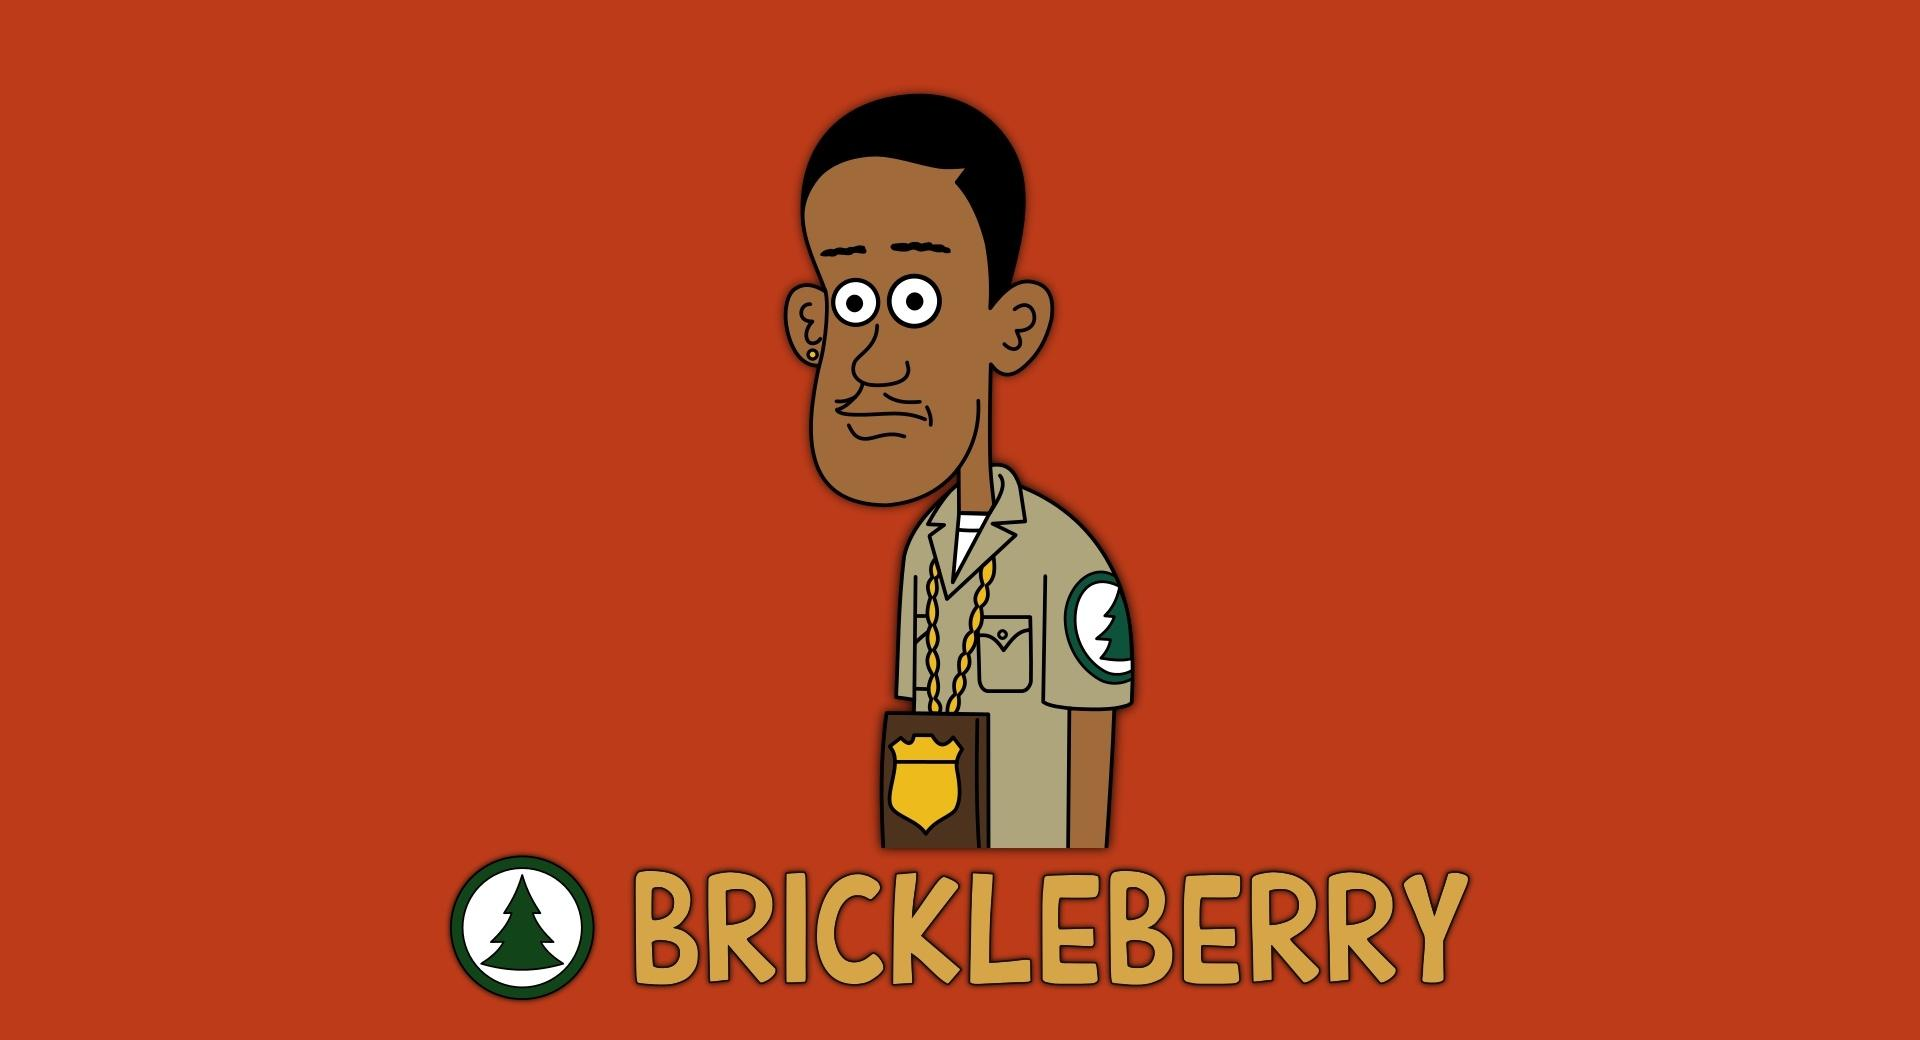 Brickleberry Denzel at 1280 x 960 size wallpapers HD quality